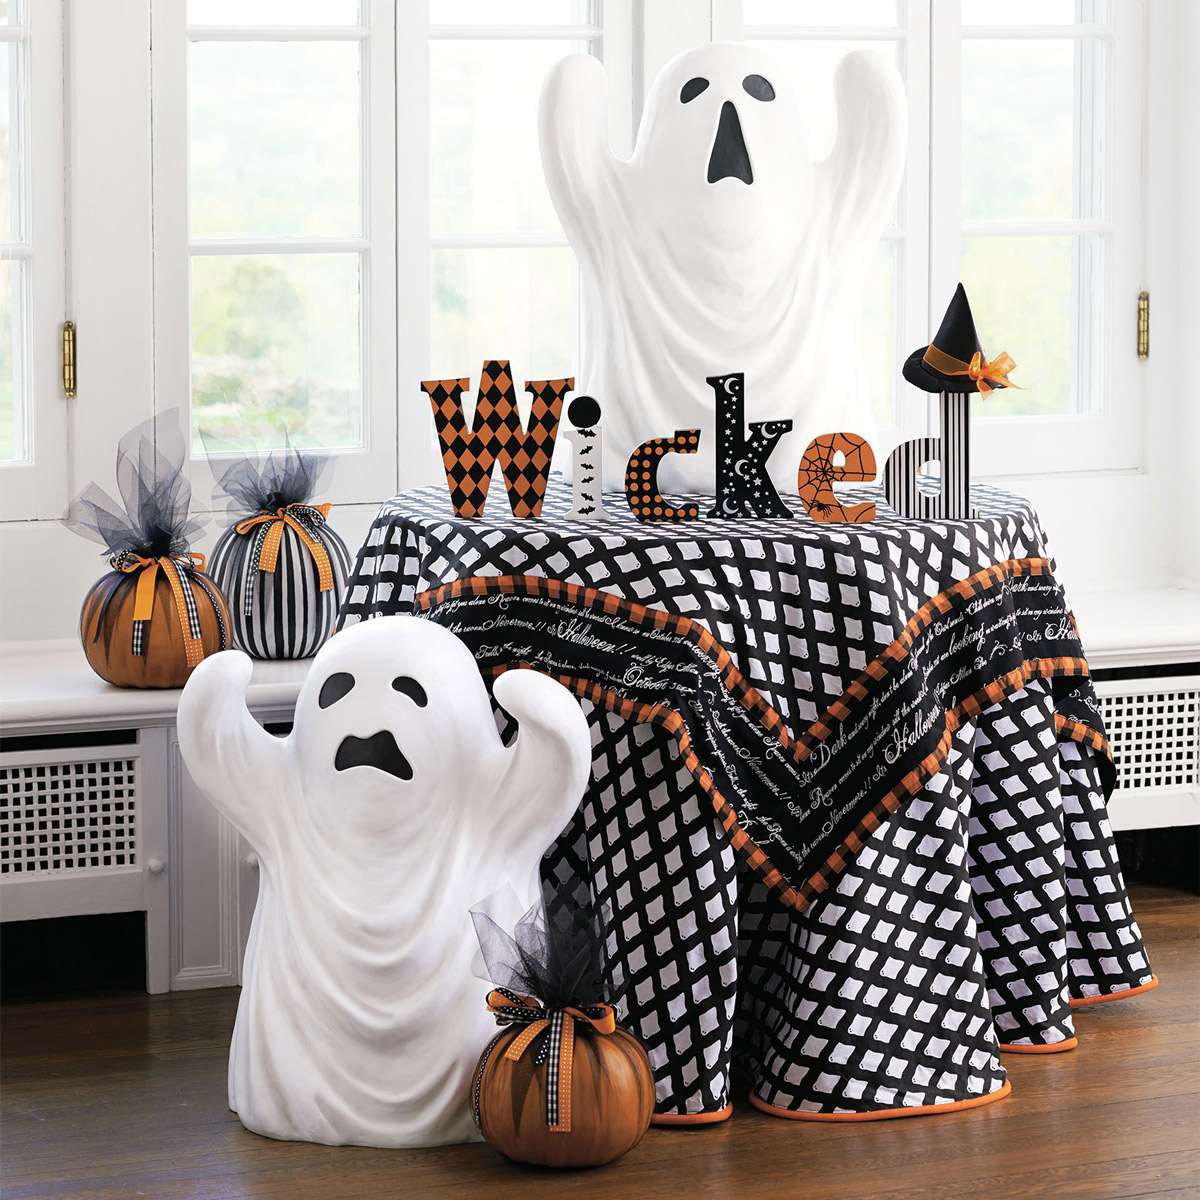 Decorations For A Halloween Party: Halloween Ghost Statues